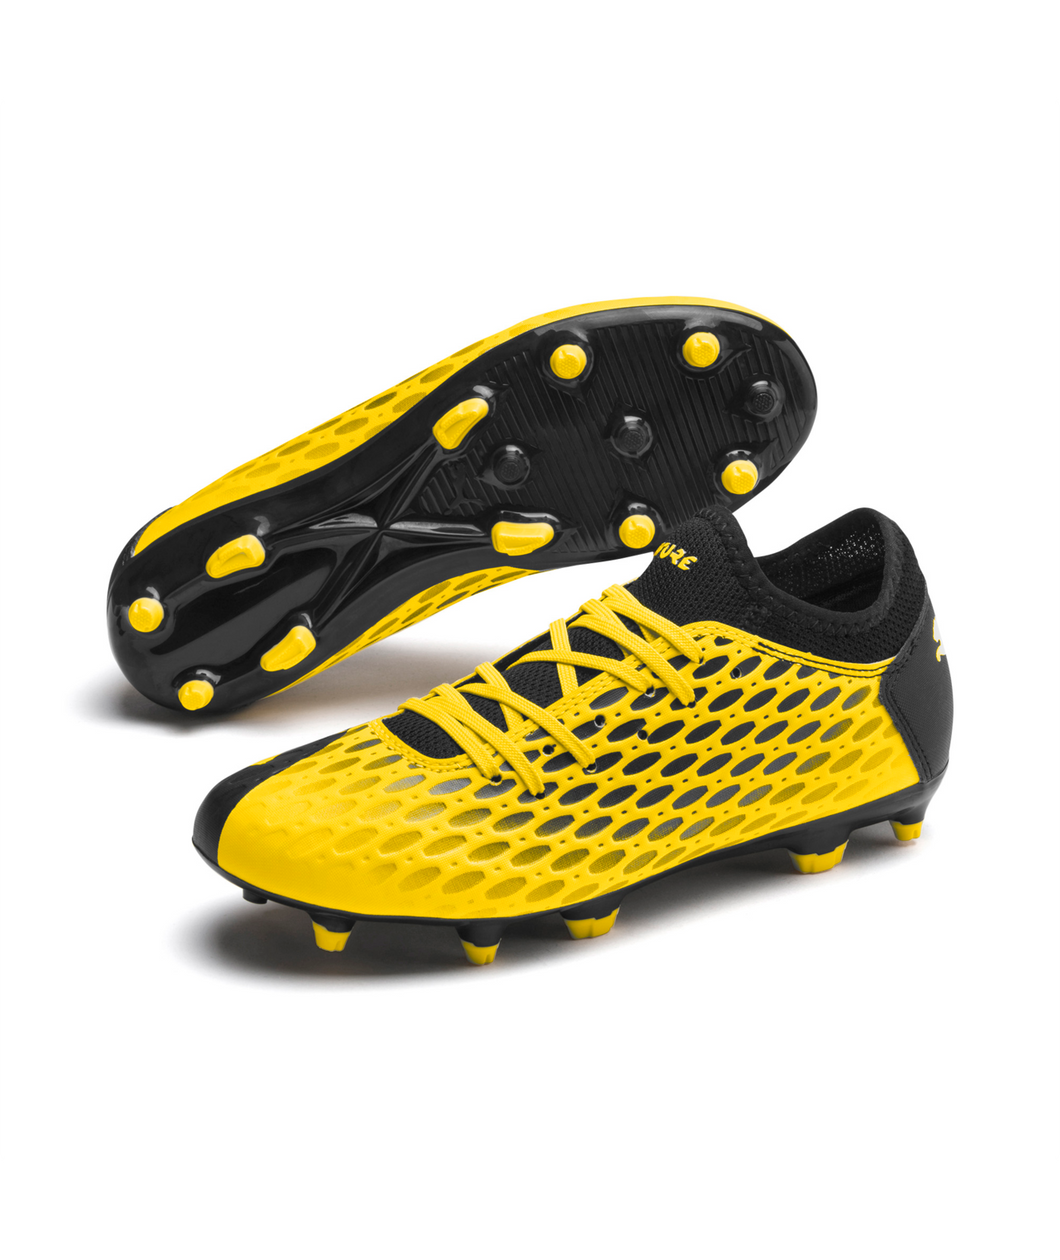 Puma Future 5.4 FG/AG Jr Yellow/Black 105810 03